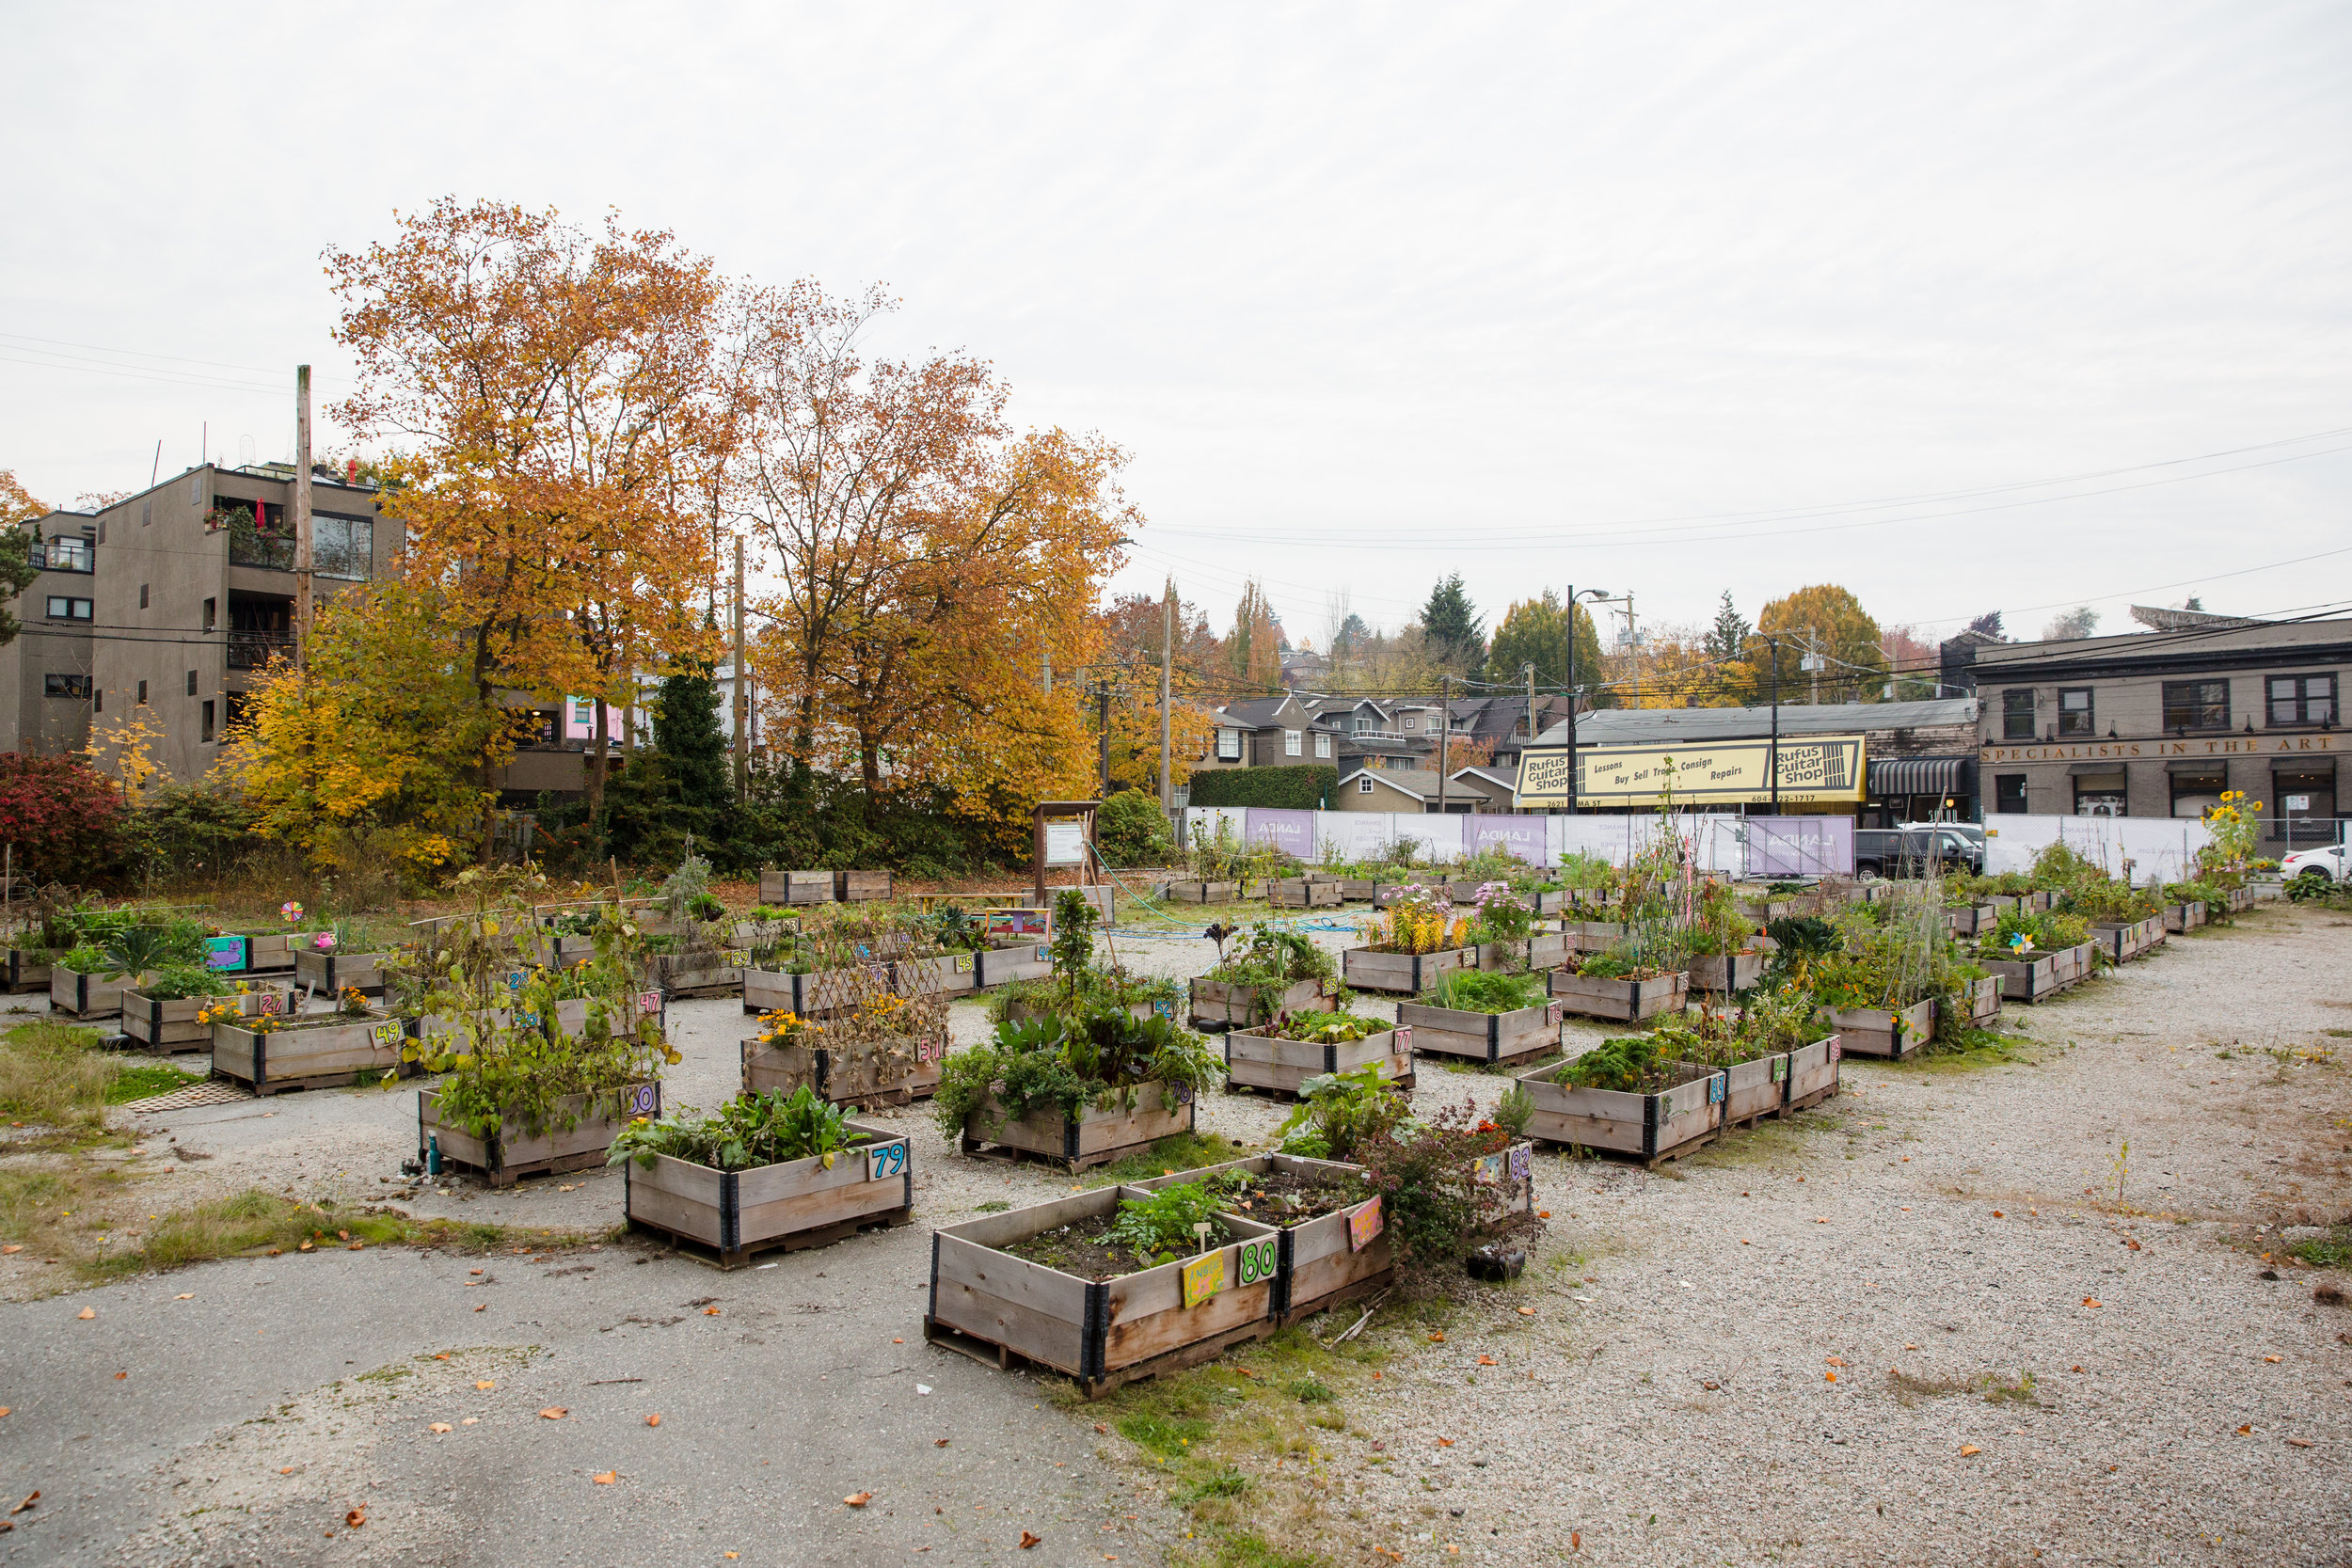 Alma_10th_temporary_community_garden_vancouver